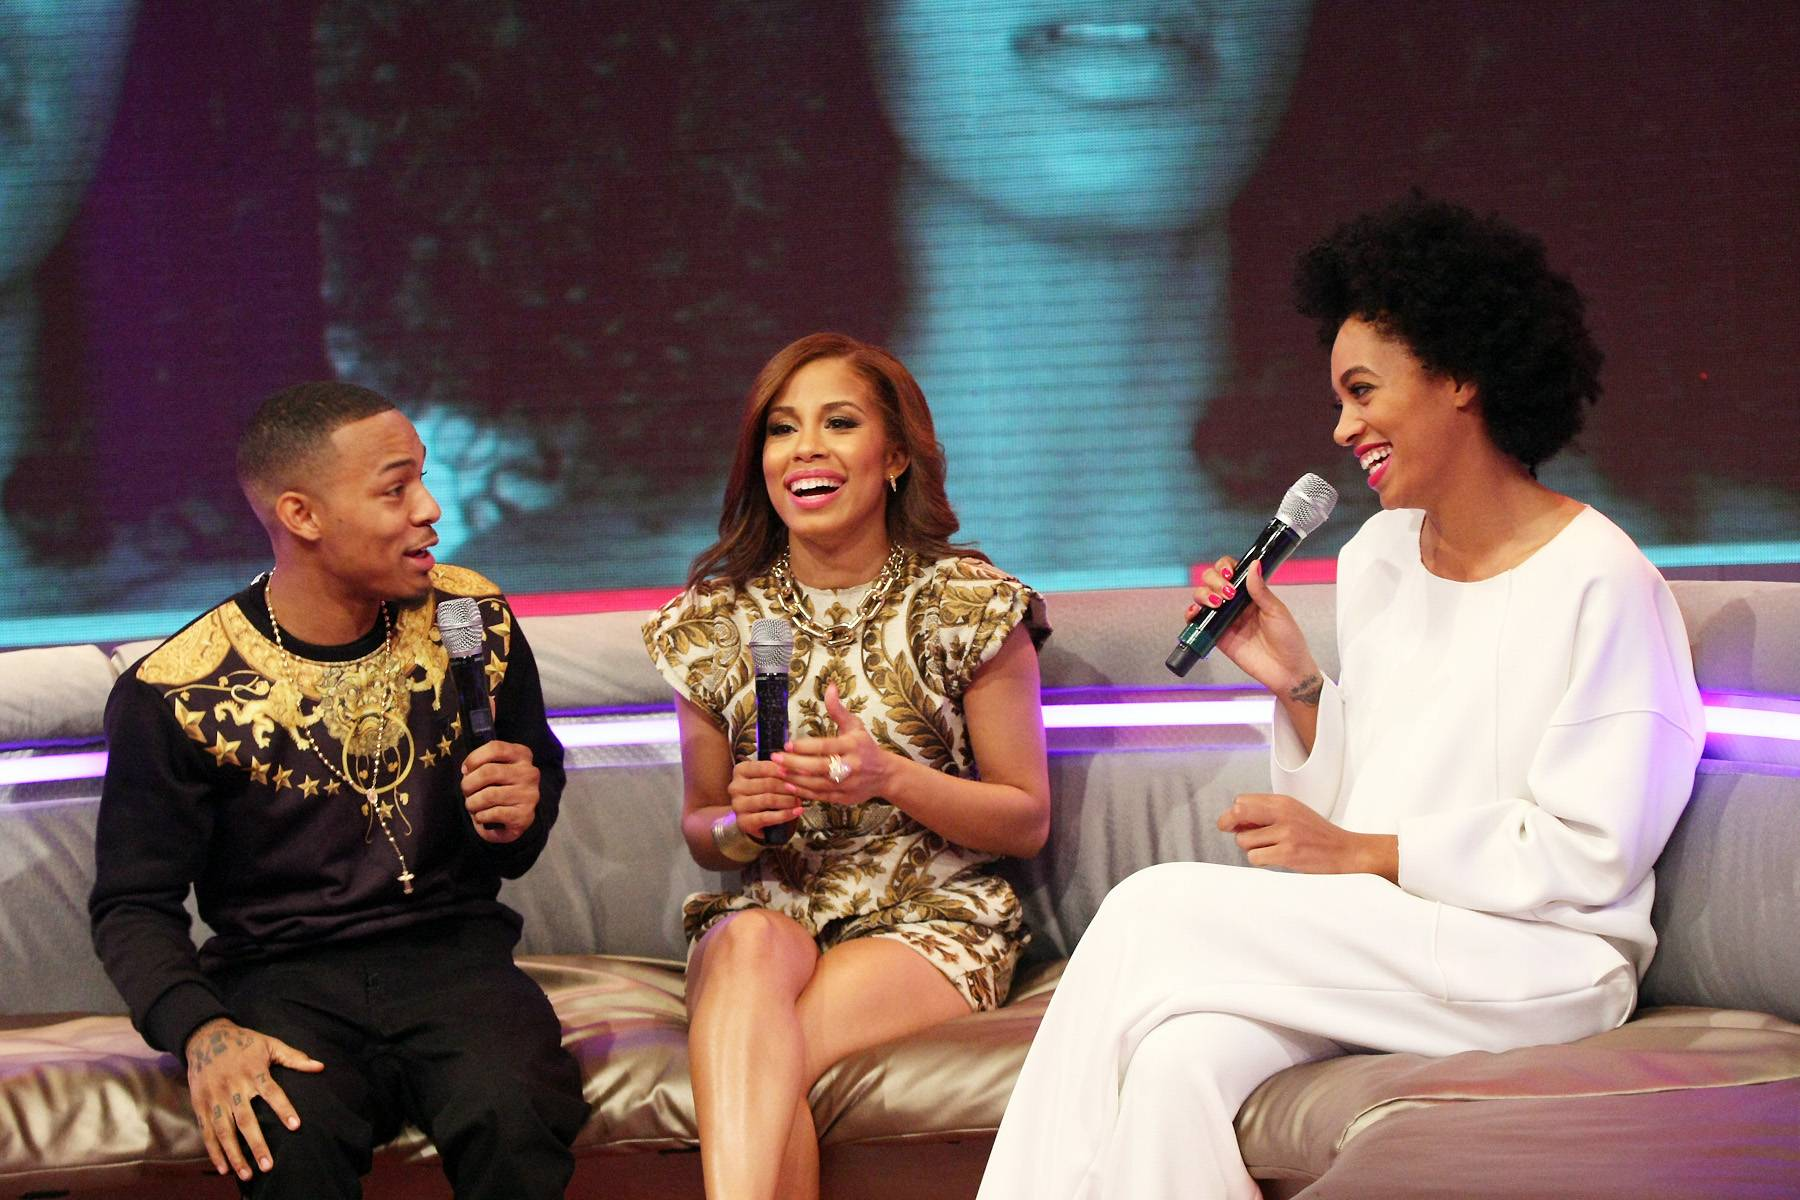 Say Word? - Bow Wow, Keshia Chante and Solange Knowles enjoy a laugh while on the 106 couch.(Photo: Bennett Raglin/BET/Getty Images for BET)